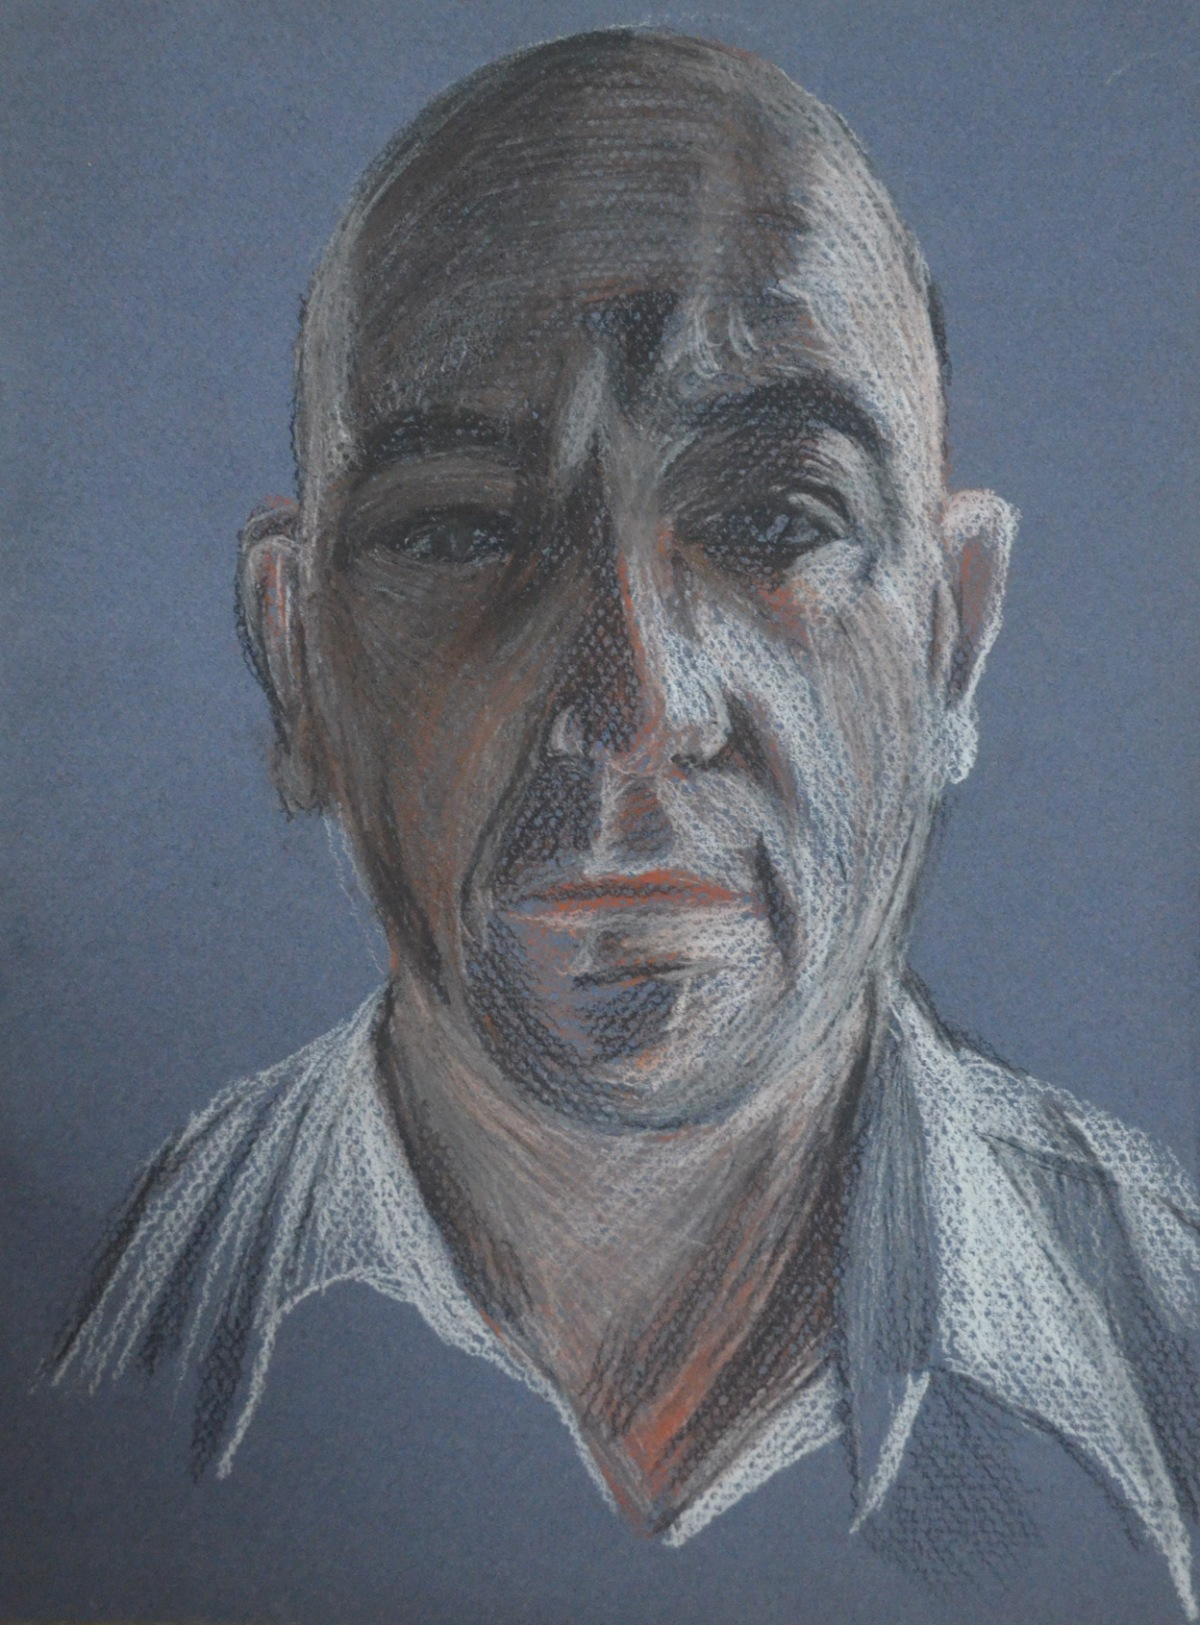 8 - Eigth Self Portrait in Conte and Chinese White Pencil